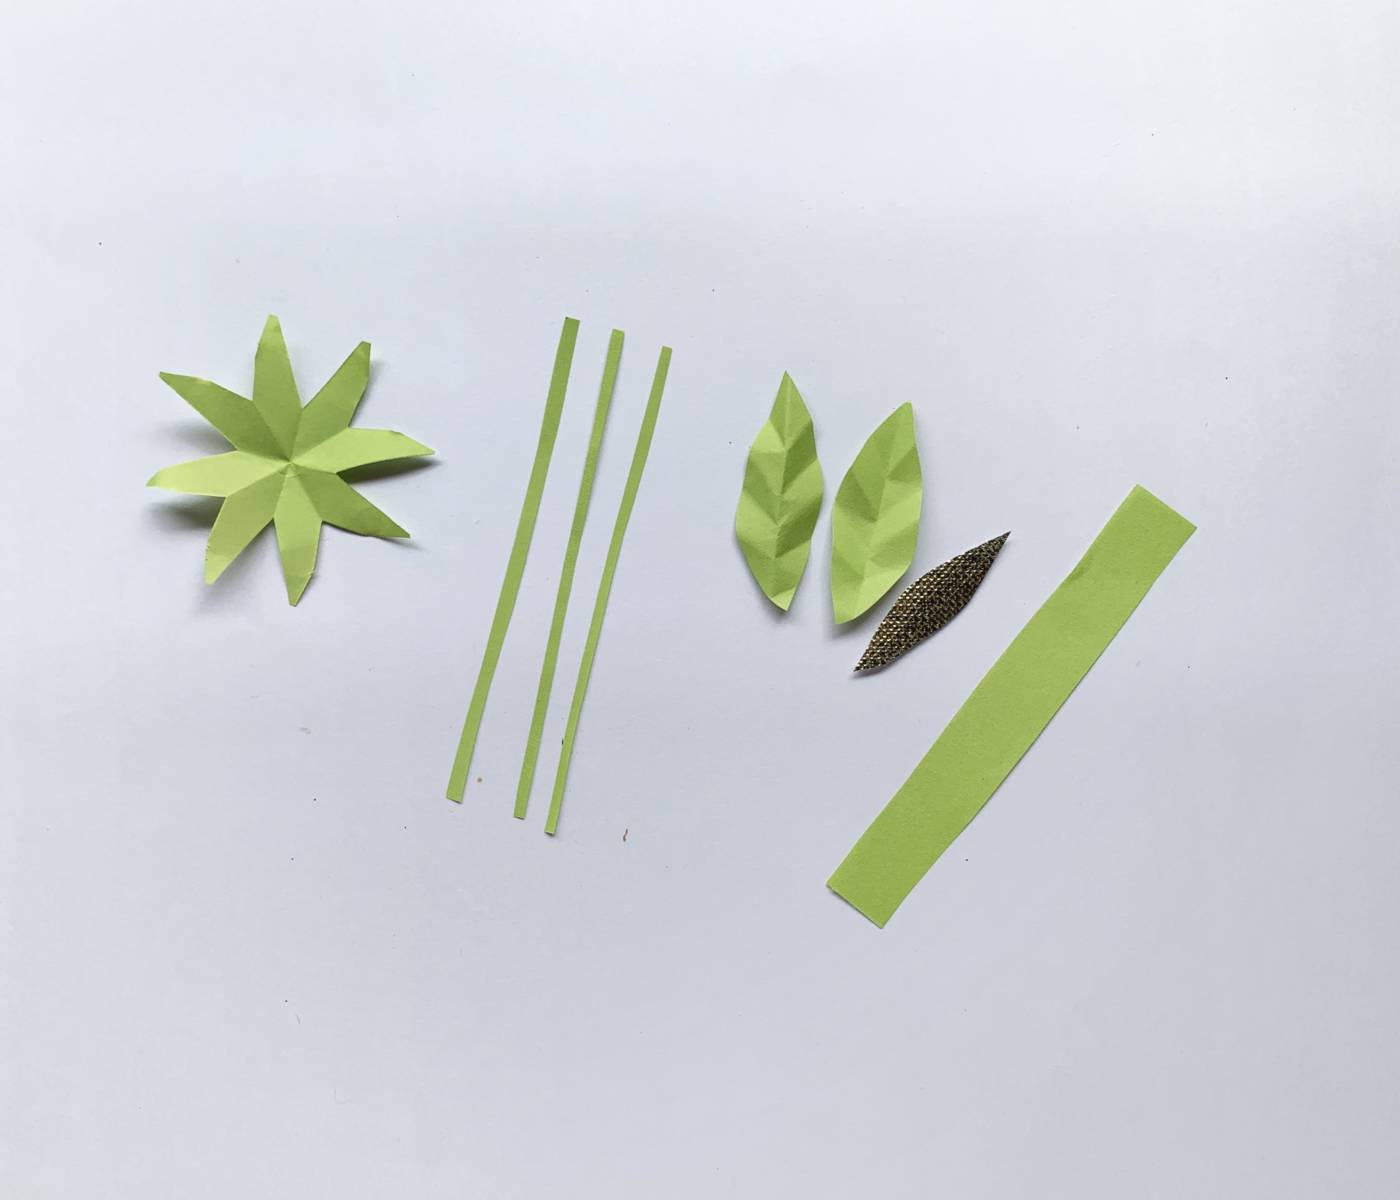 green pieces of paper spread out, one being an eight-pointed star shape, three being narrow strips, three being leaf shapes and one being a thick strip of paper